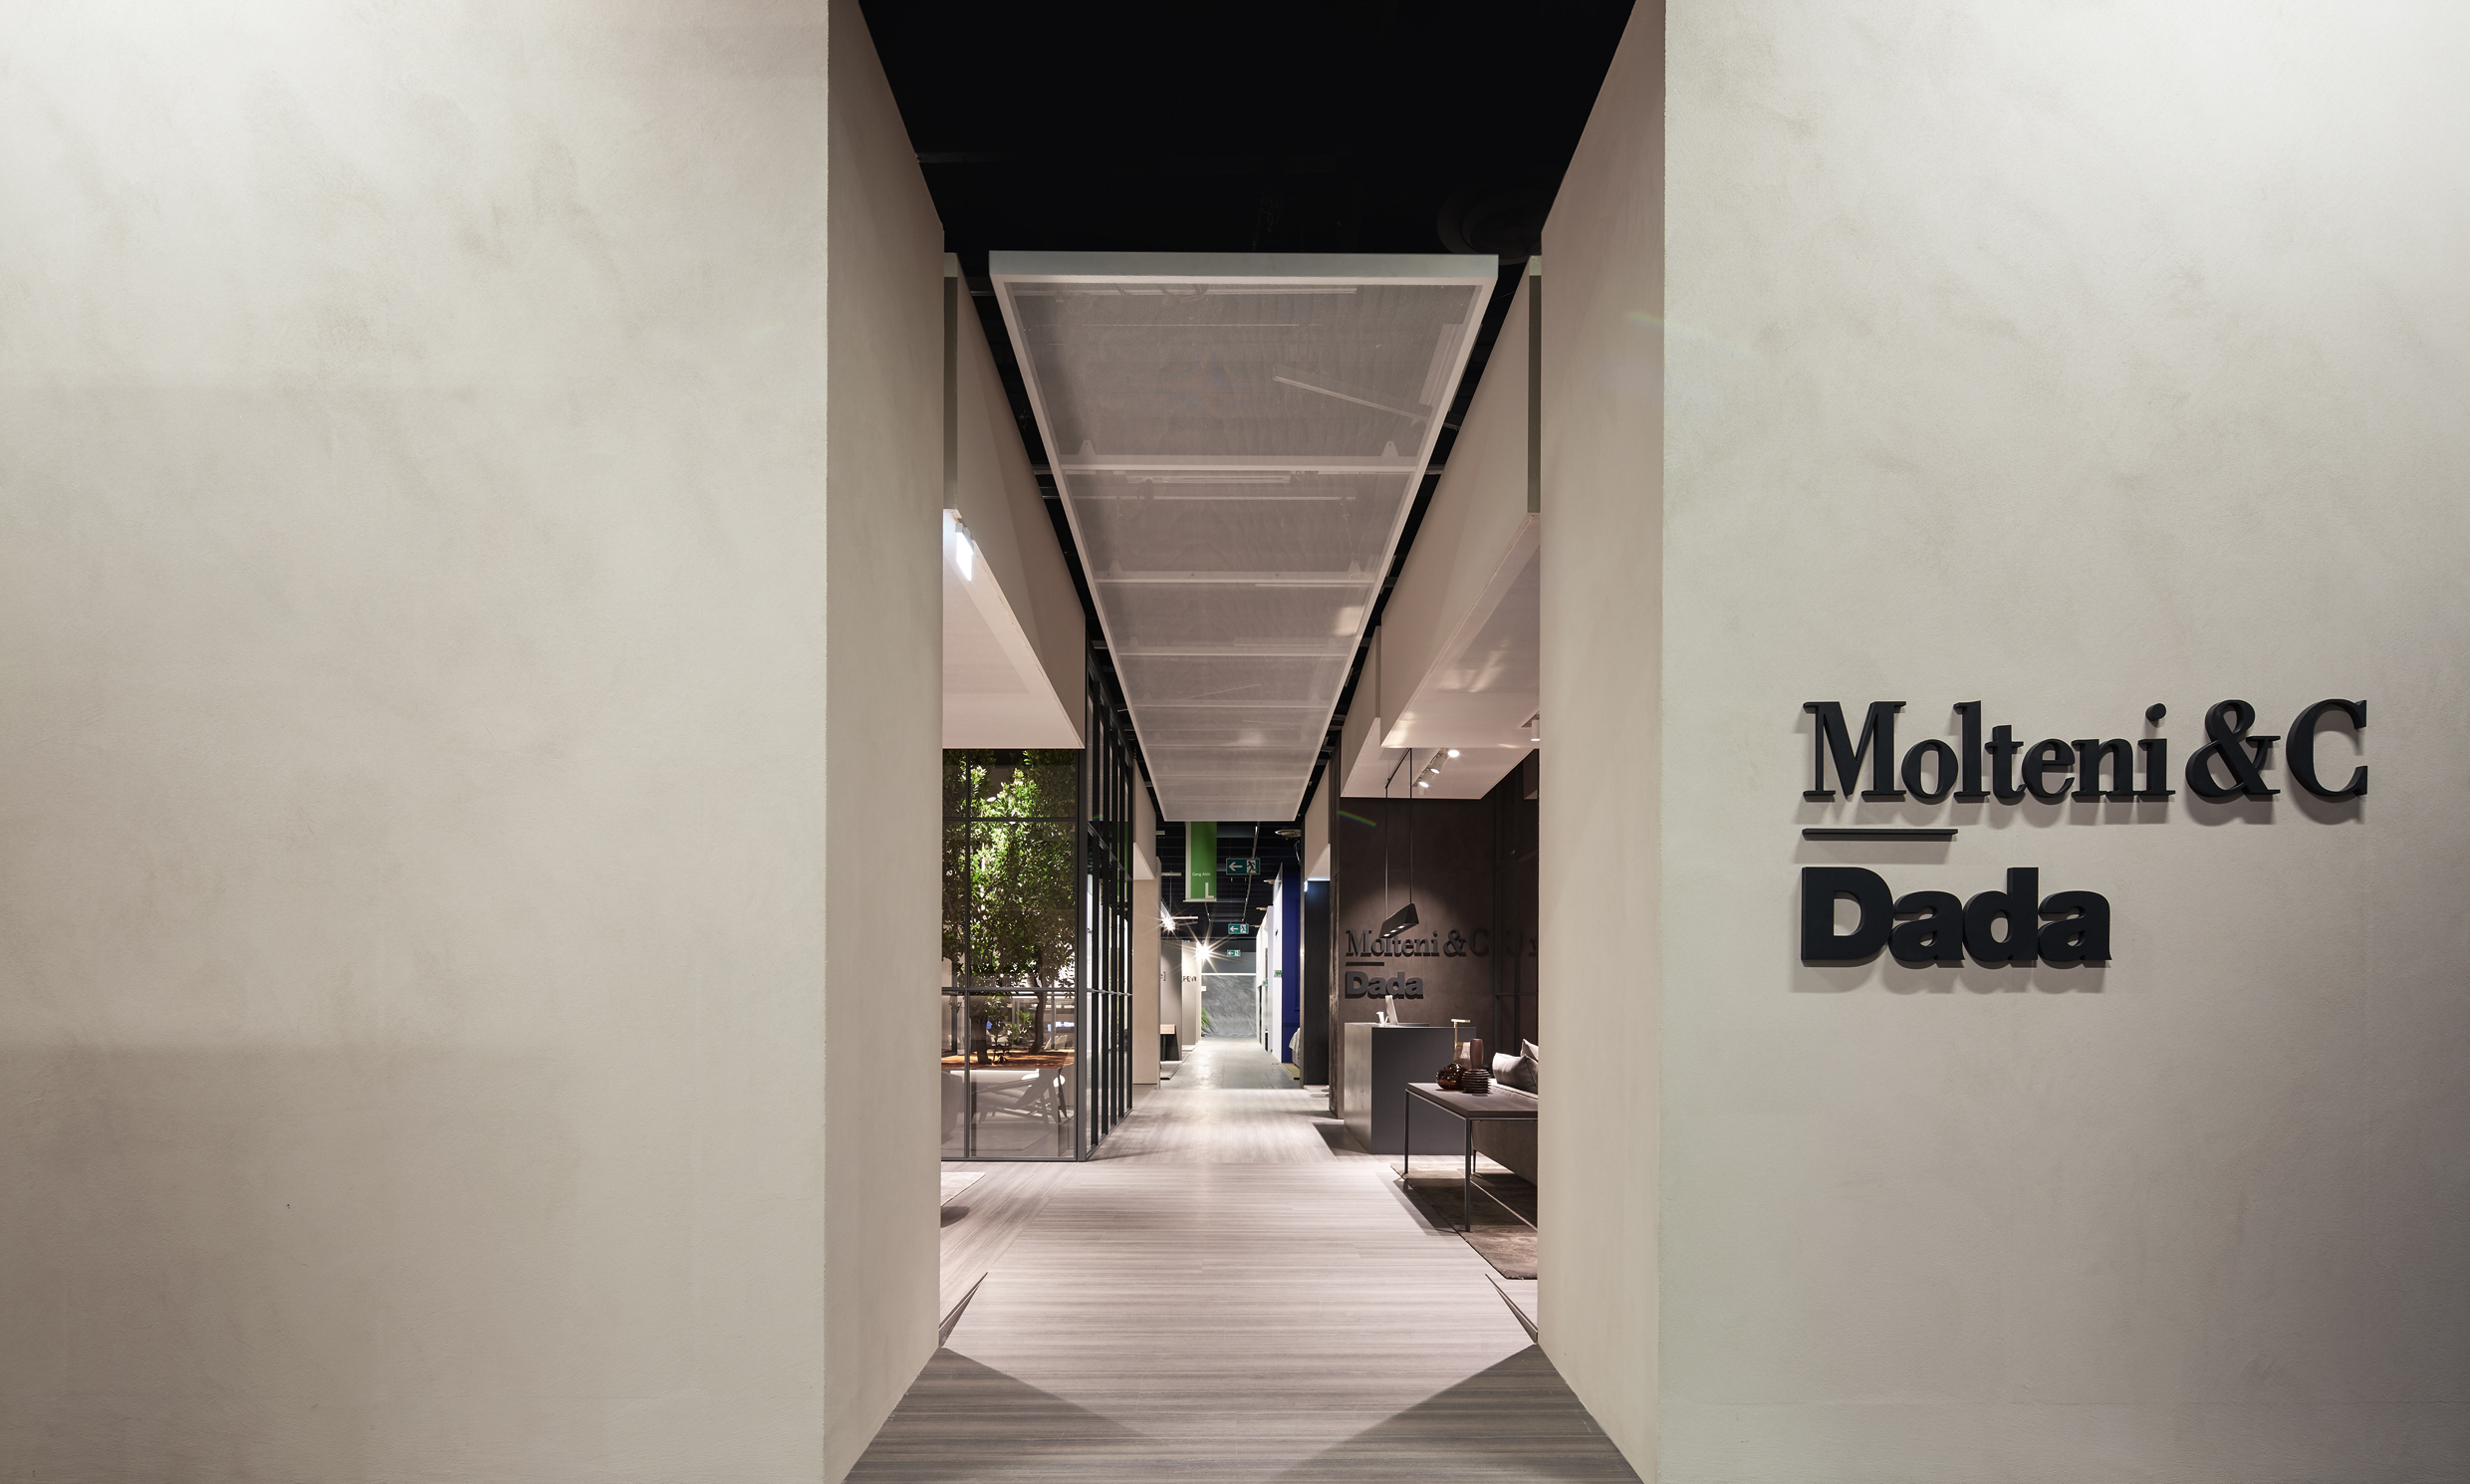 VVDA_2018_Molteni&C at IMM Cologne